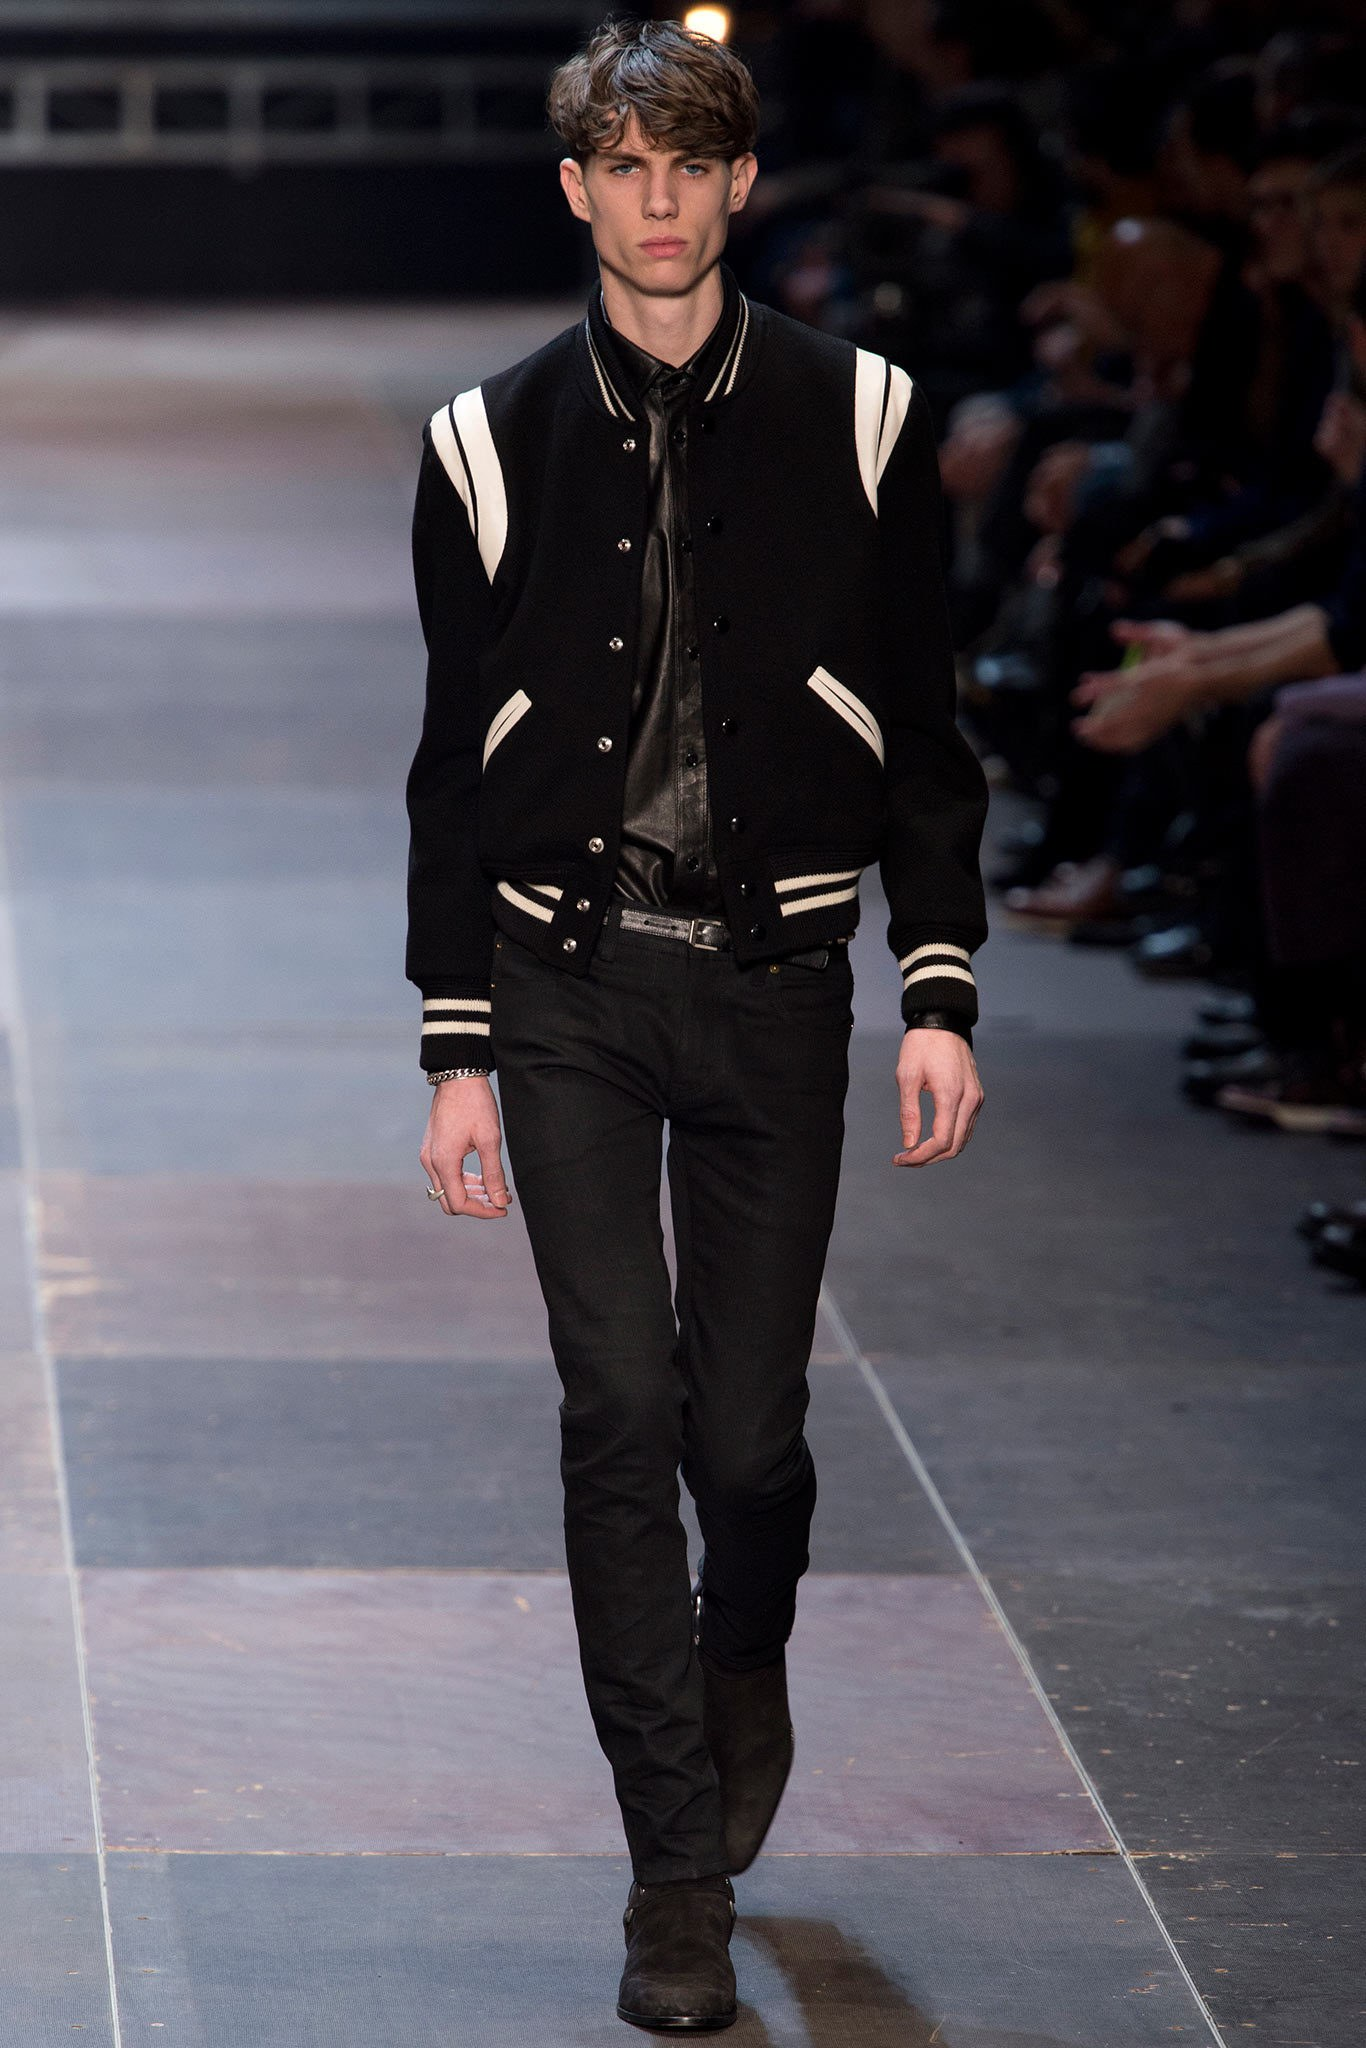 Saint Laurent FW 2013 runway teddy